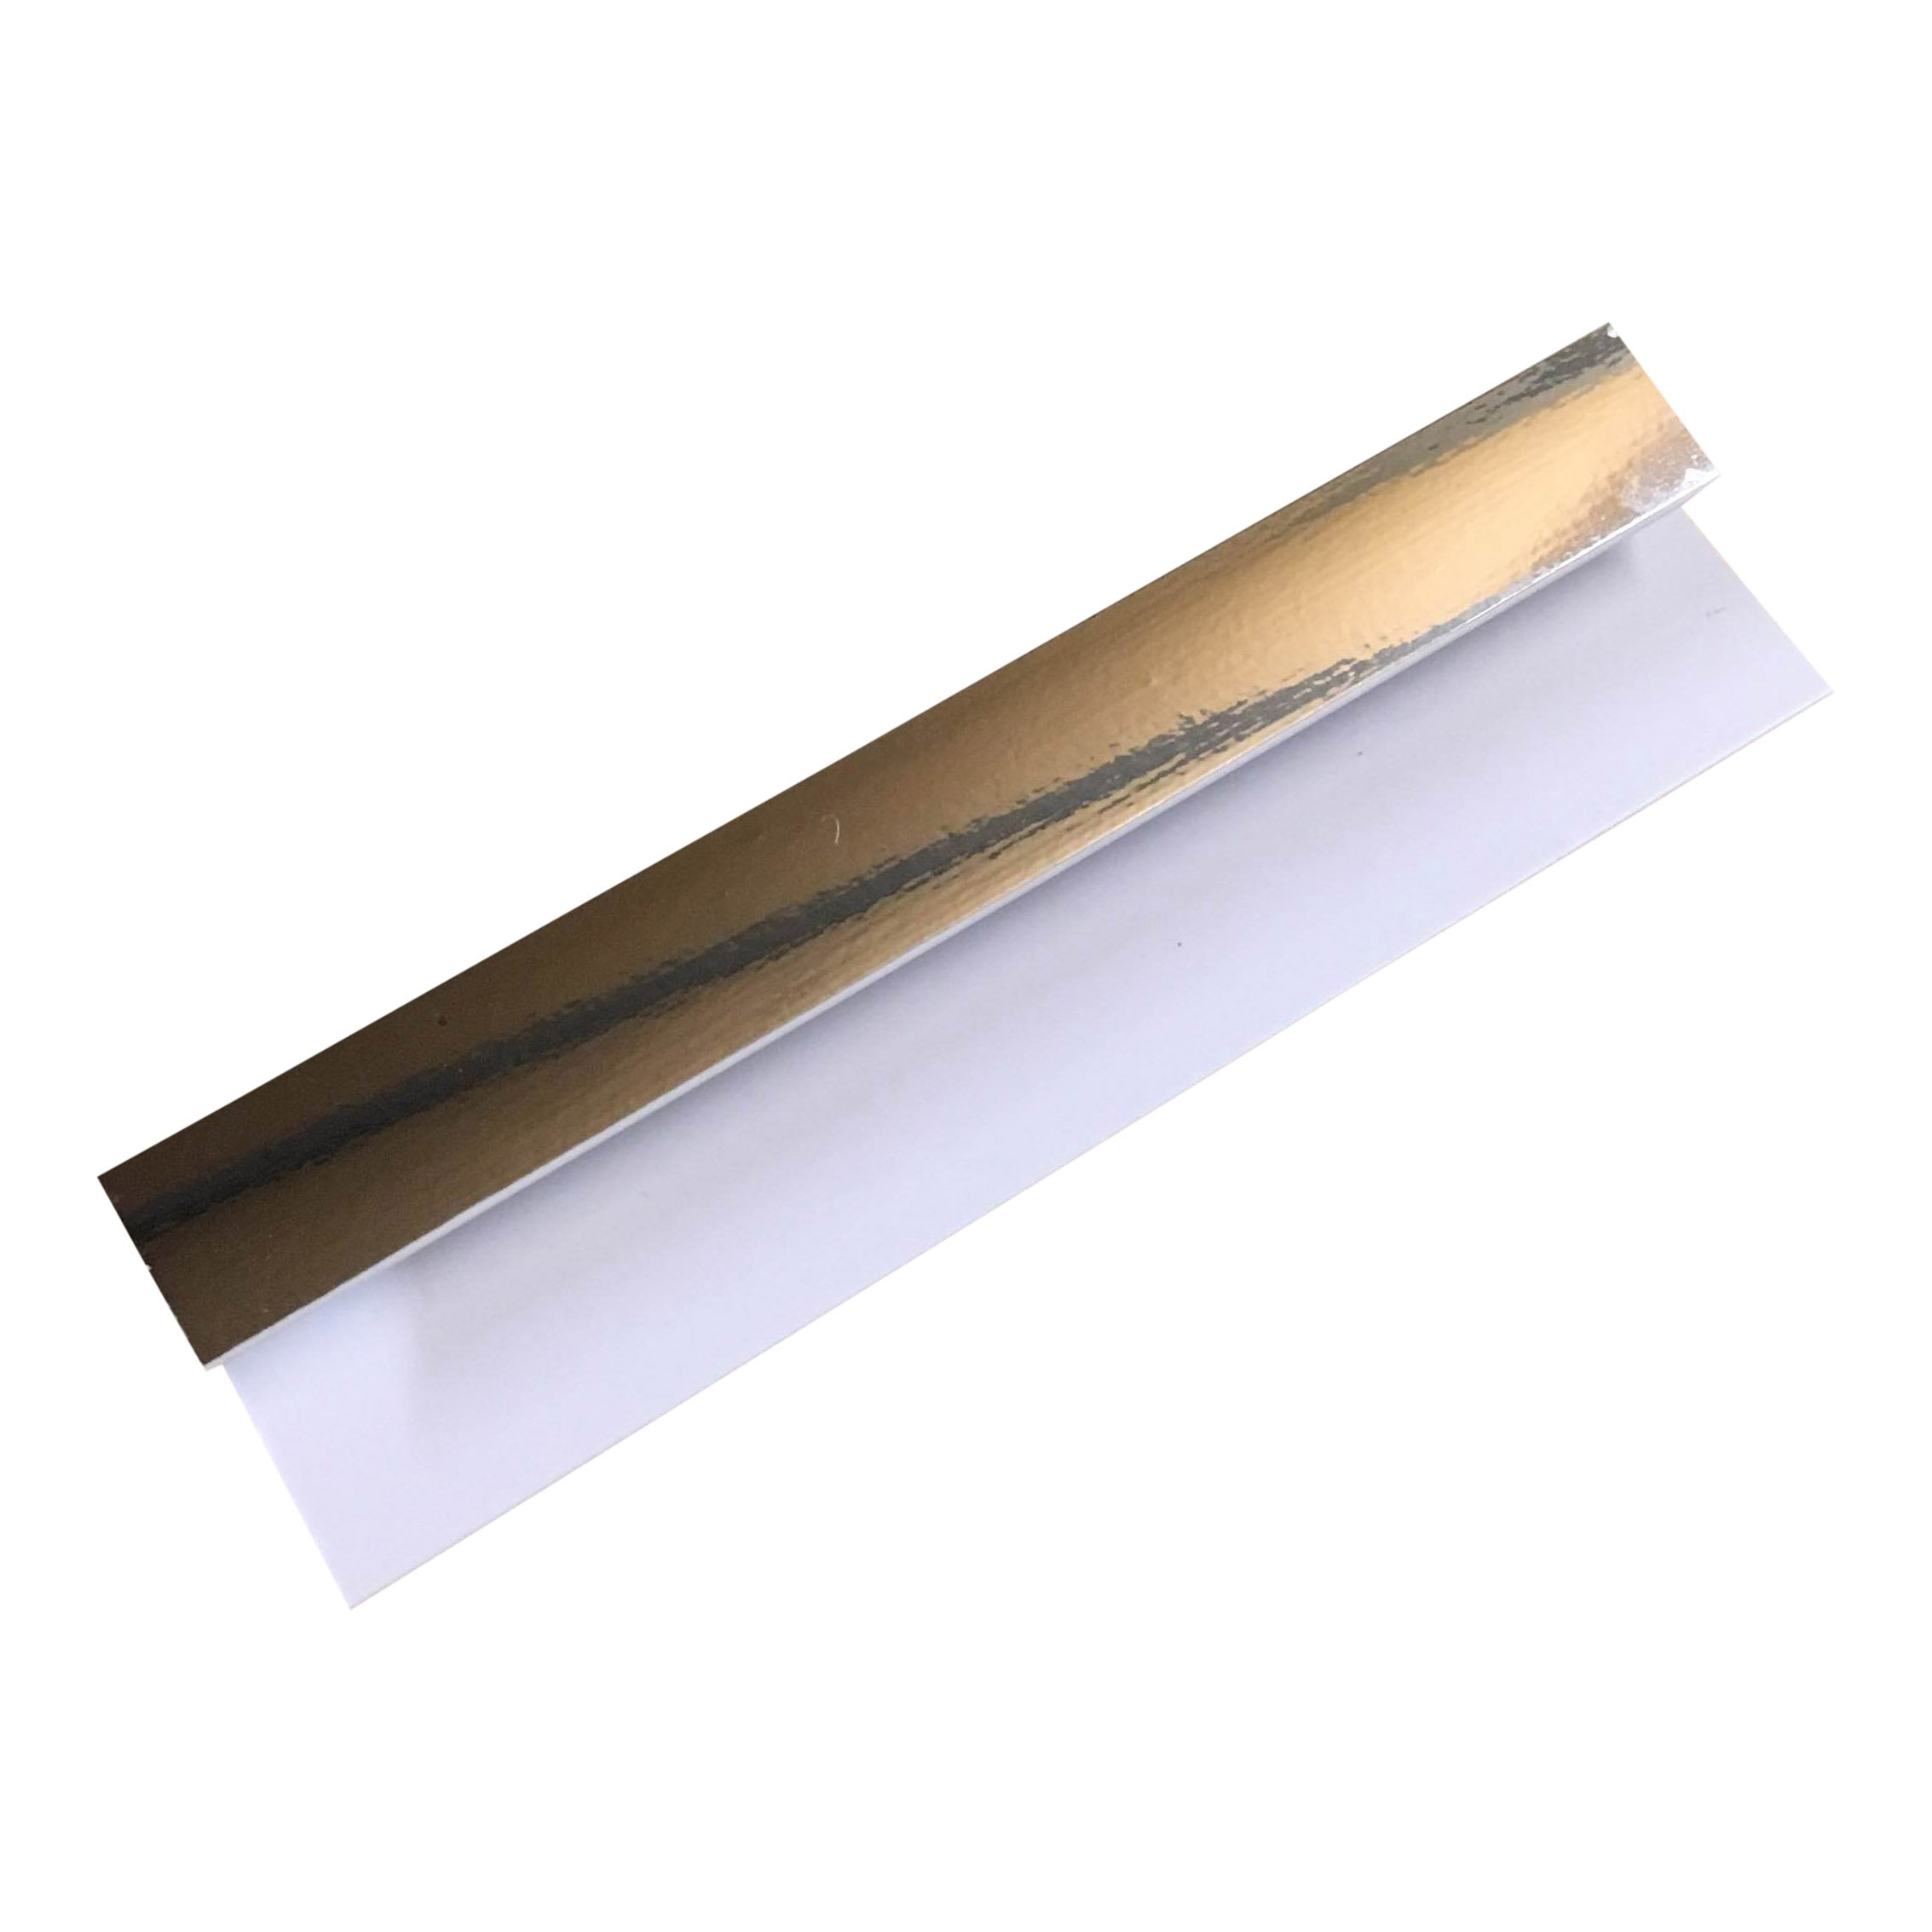 White Sparkle Silver Ceiling Panels Bathroom Cladding Shower Wall /& Trims 8MM